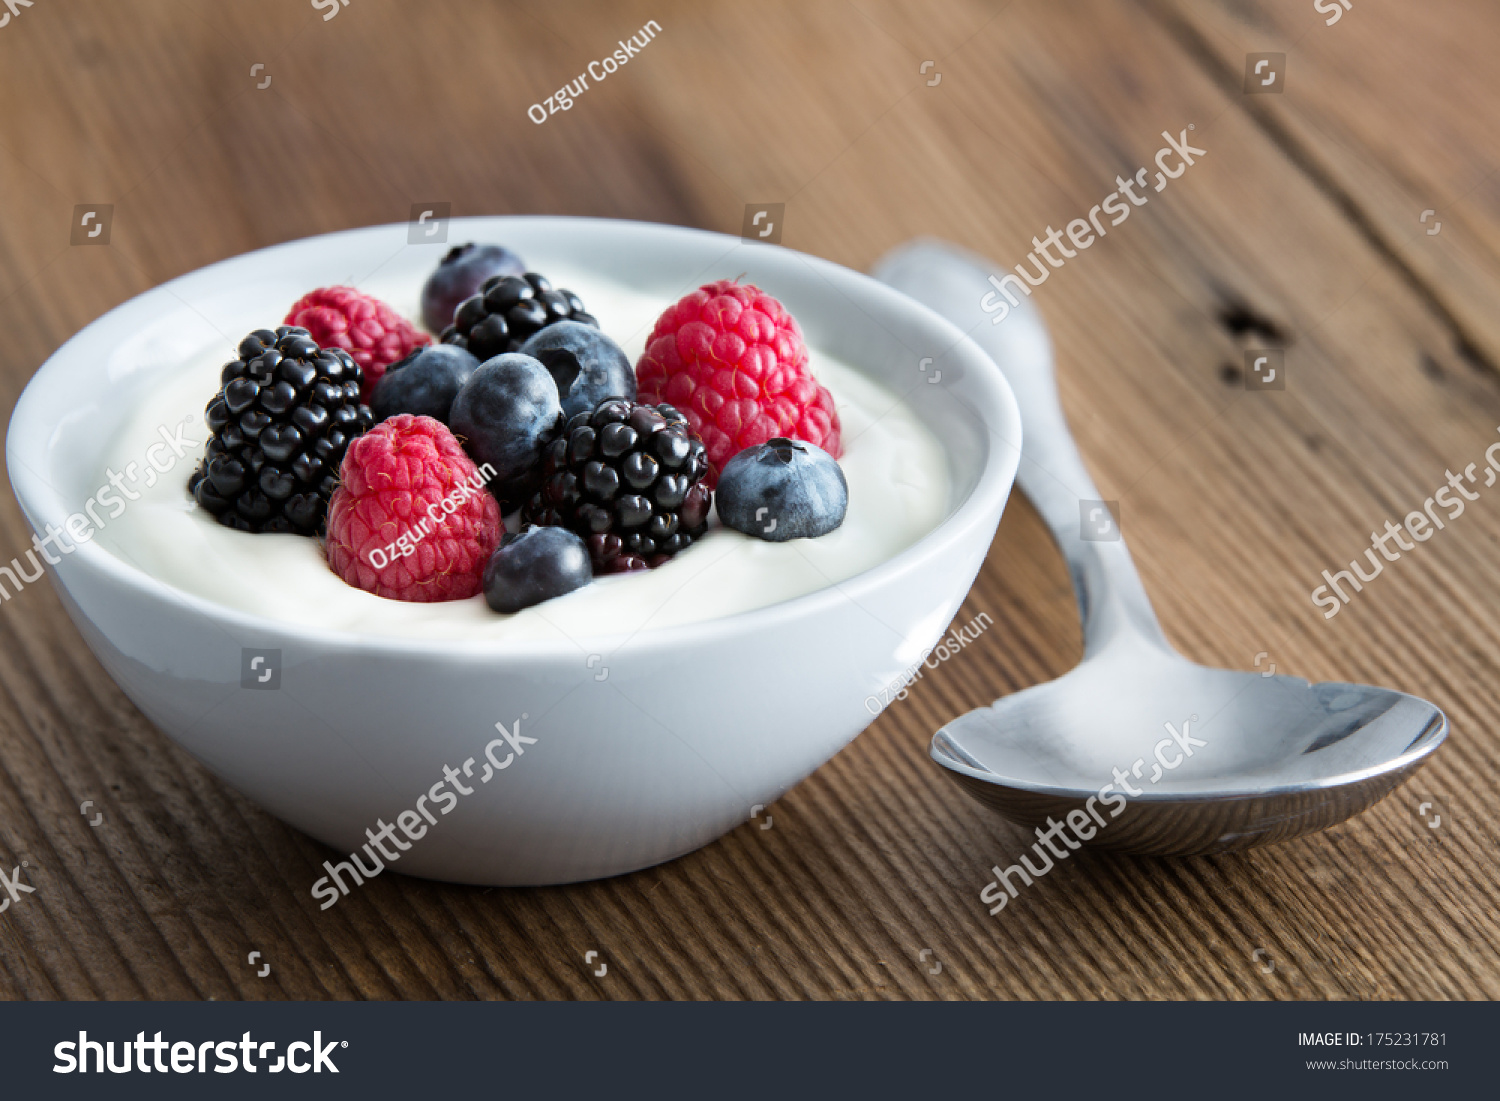 Bowl of fresh mixed berries and yogurt with farm fresh strawberries, blackberries and blueberries served on a wooden table #175231781